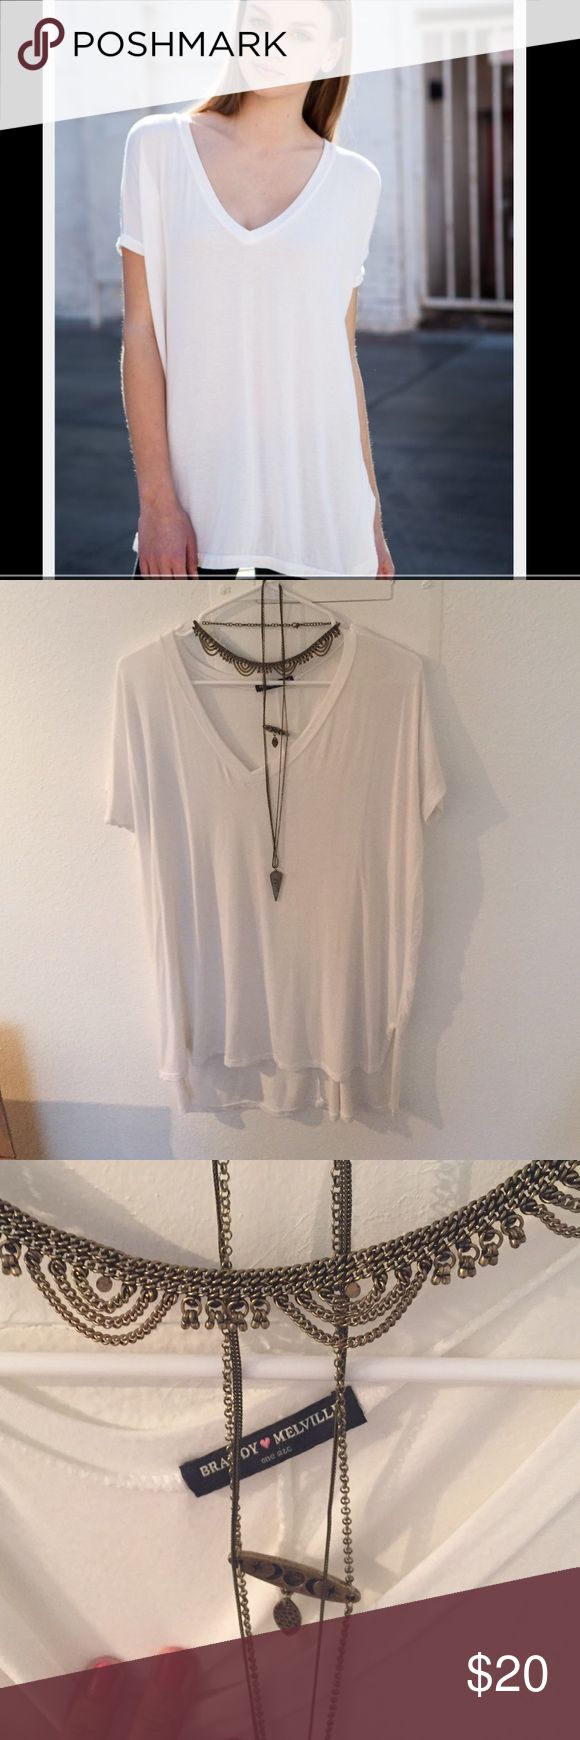 Brandy Melville Milan Top All white Milan Top by Brandy Melville! Only worn once! In great condition aside from a slight piling and a little stain by the neck that's not noticeable at all when wearing! Reflected in the price Brandy Melville Tops Tees - Short Sleeve